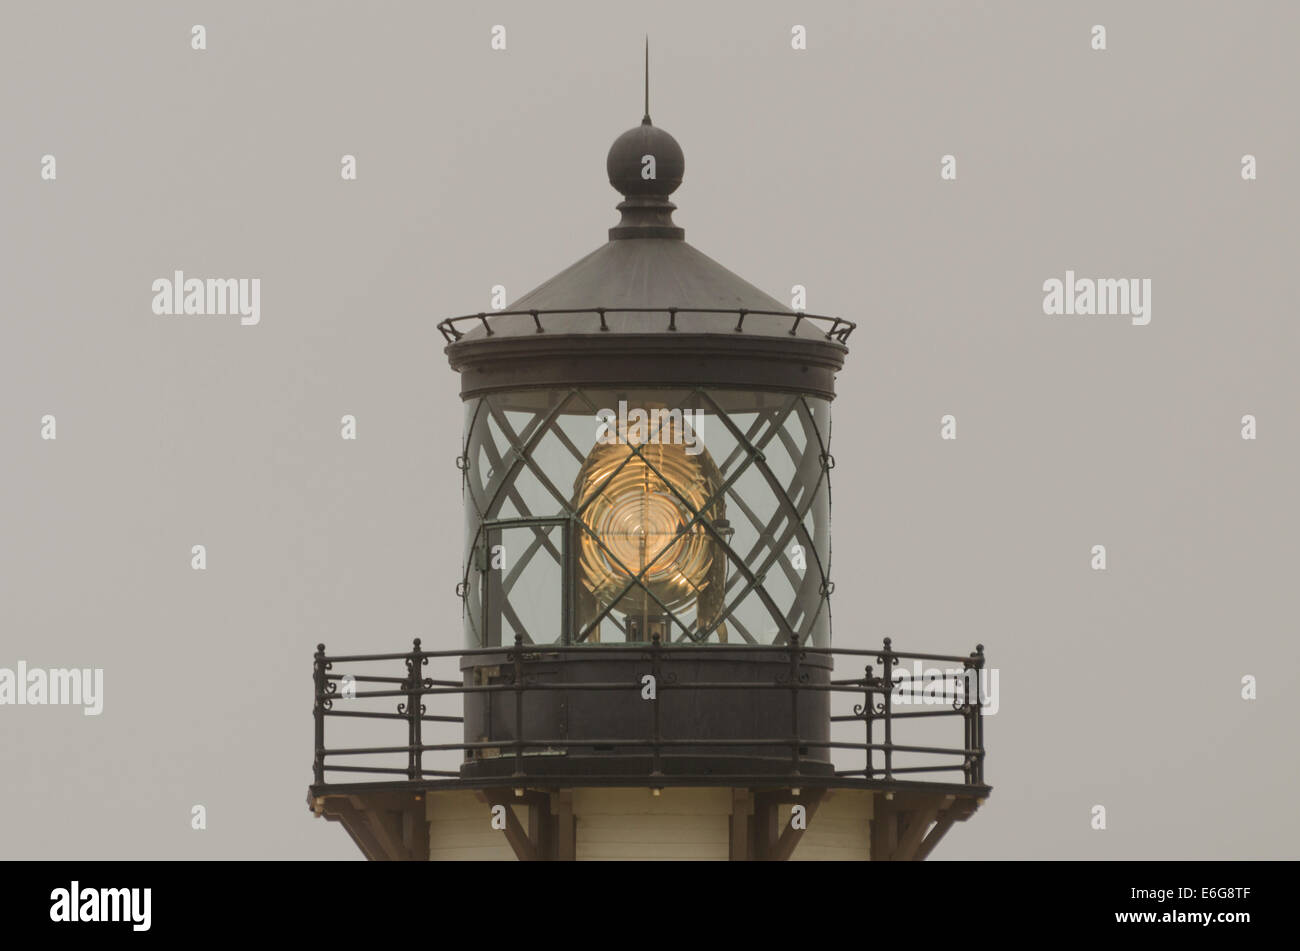 The Point Cabrillo Light Station built in 1909 has a Fresnel Lens with 90 glass prism pieces, is powered by a l000 - Stock Image